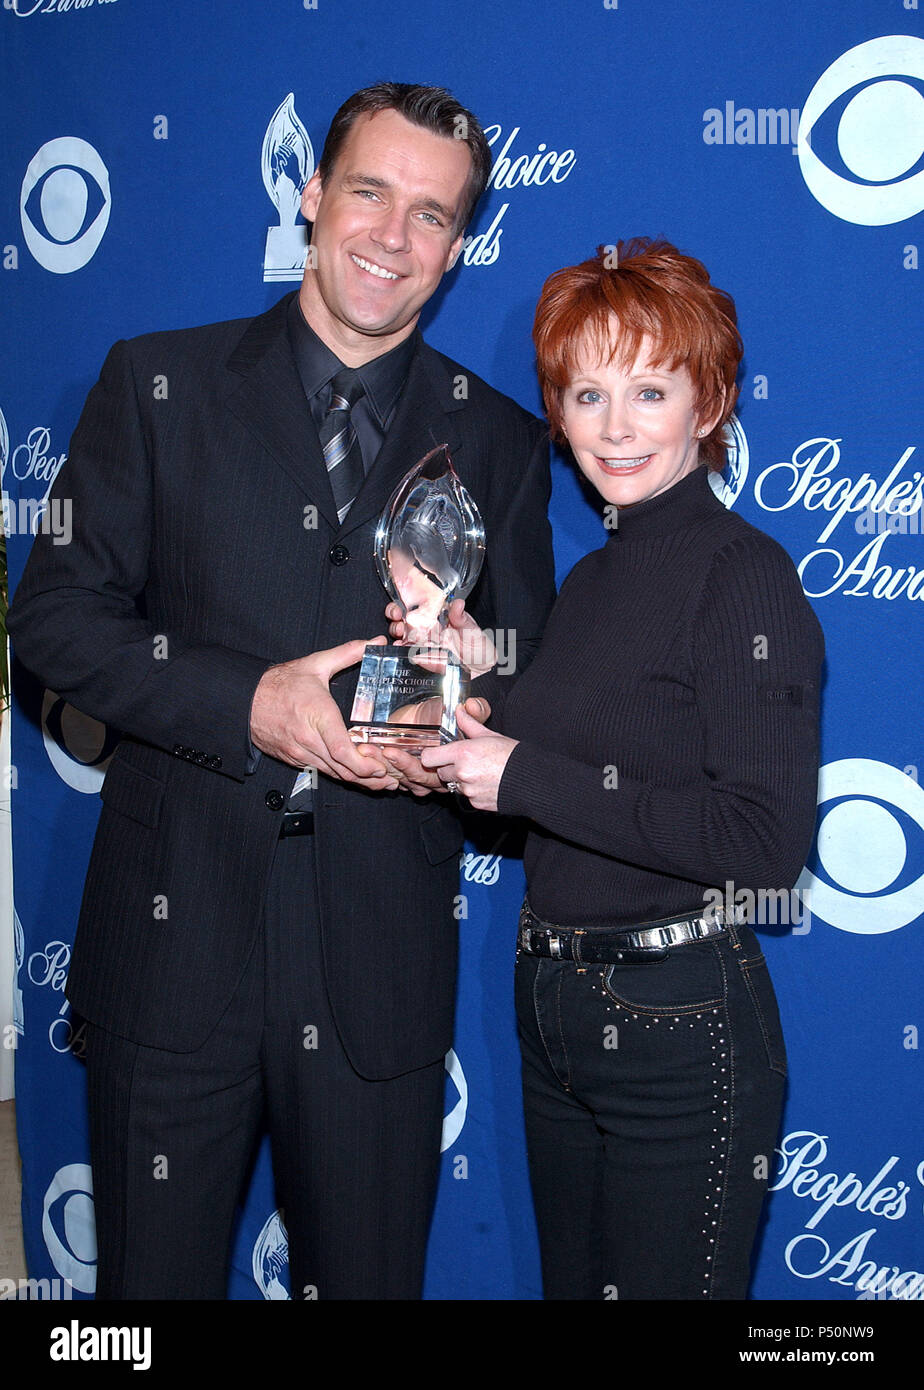 David James Elliott - JAG  -and Reba McEntire were presenting the nominees for the 28th People's  Choice Awards at the Beverly Hilton in Los Angeles. November 27, 2001.           -            ElliottDJ_McEntireReba02.jpgElliottDJ_McEntireReba02  Event in Hollywood Life - California, Red Carpet Event, USA, Film Industry, Celebrities, Photography, Bestof, Arts Culture and Entertainment, Topix Celebrities fashion, Best of, Hollywood Life, Event in Hollywood Life - California,  backstage trophy, Awards show, movie celebrities, TV celebrities, Music celebrities, Topix, Bestof, Arts Culture and Ente - Stock Image